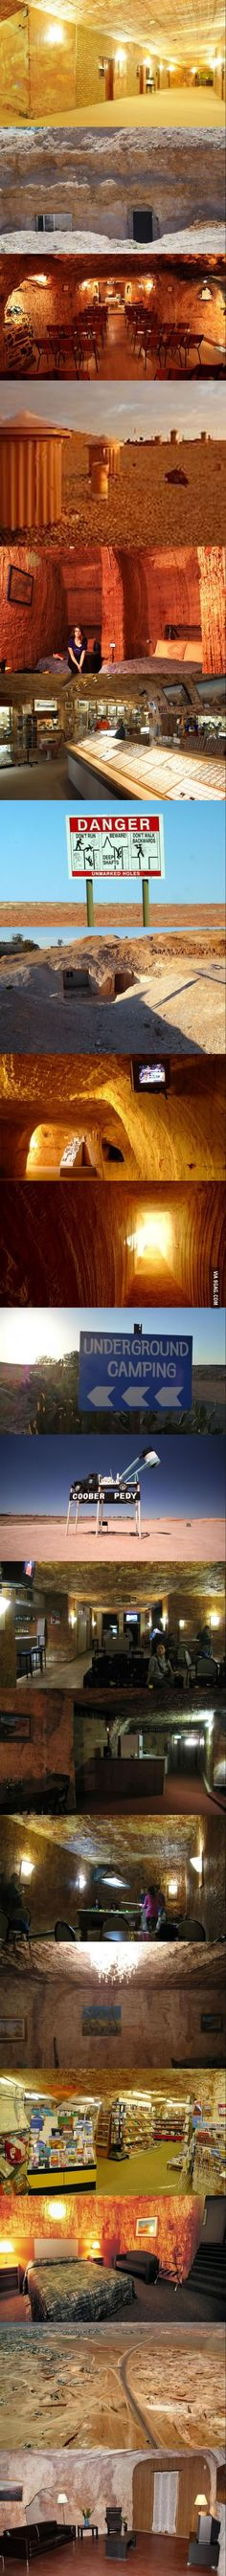 """Australians have built the underground town of """"Coober Pedy"""" in northern South Australia to escape extreme heat. The area is famous for its opal mining. Some of the most spectacular opals in the world come from here. South Australia, Australia Travel, Australia 2018, Visit Australia, Land Of Oz, Rock Pools, Famous Places, Adventure Travel, New Zealand"""